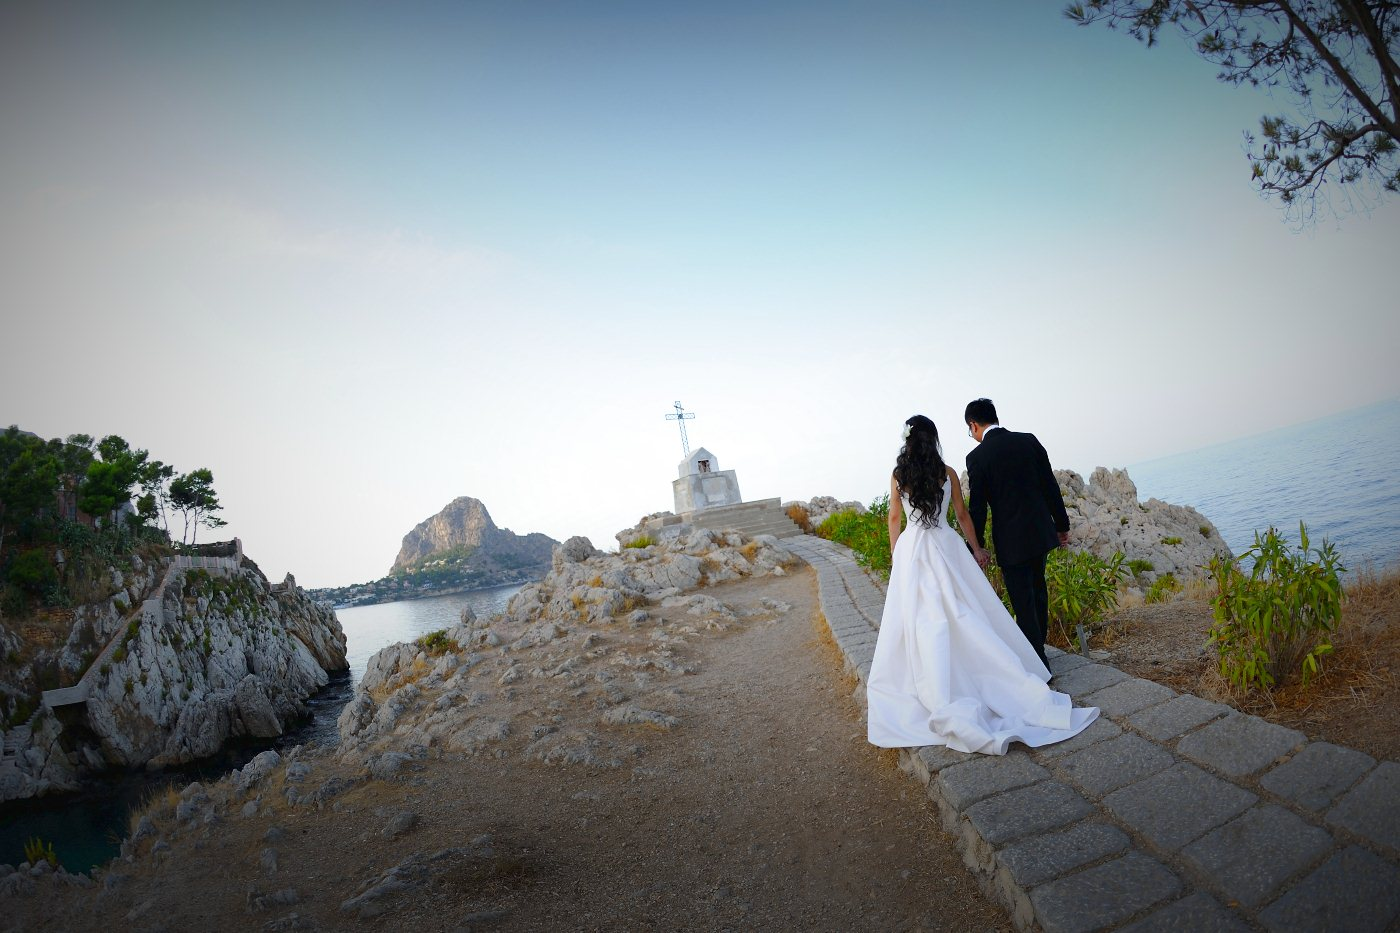 wedding photographer sicily_01.jpg